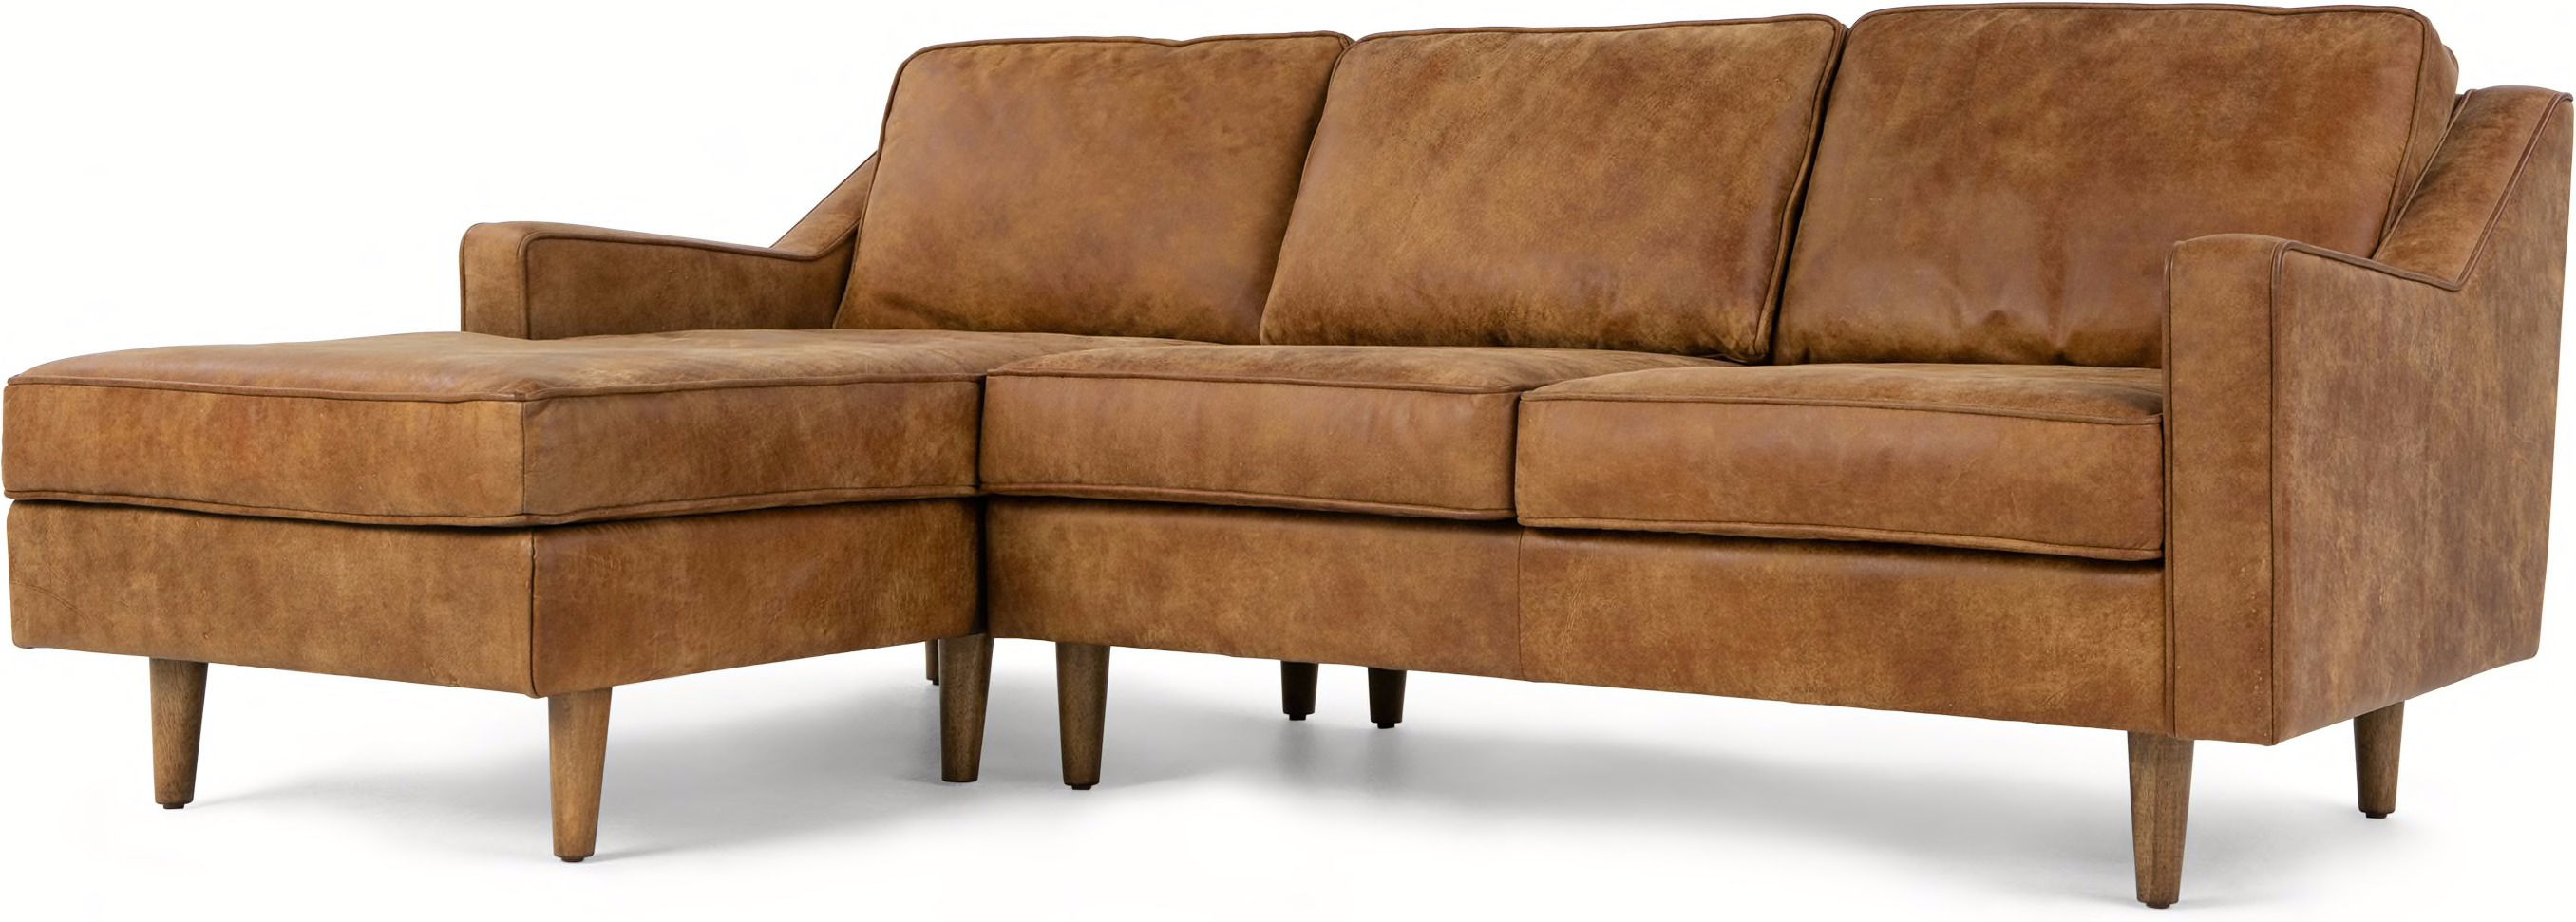 Best leather chaise sofa prices in sofas online for Chaise end sofa uk